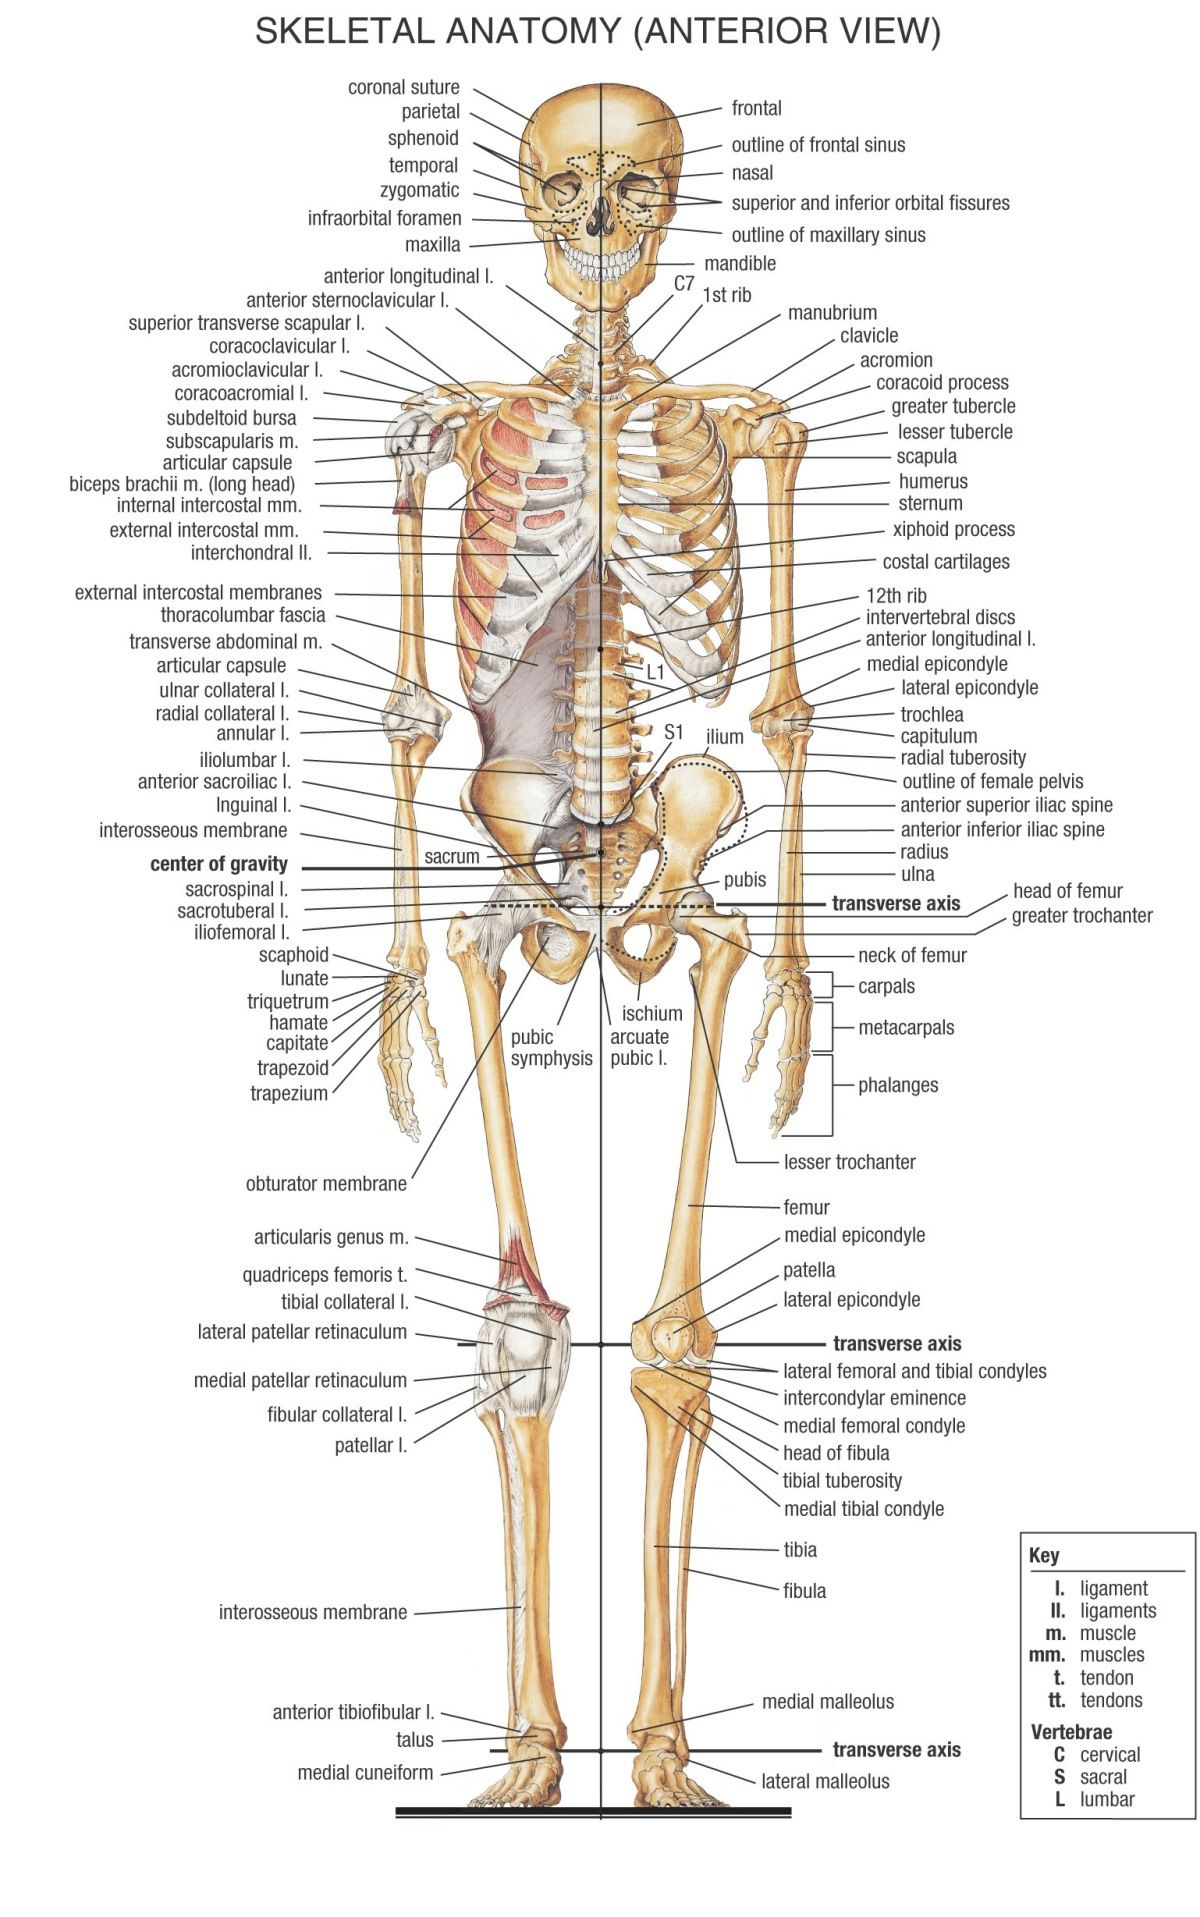 handout | Anatomy & Physiology | Pinterest | Anatomy, Medical and School